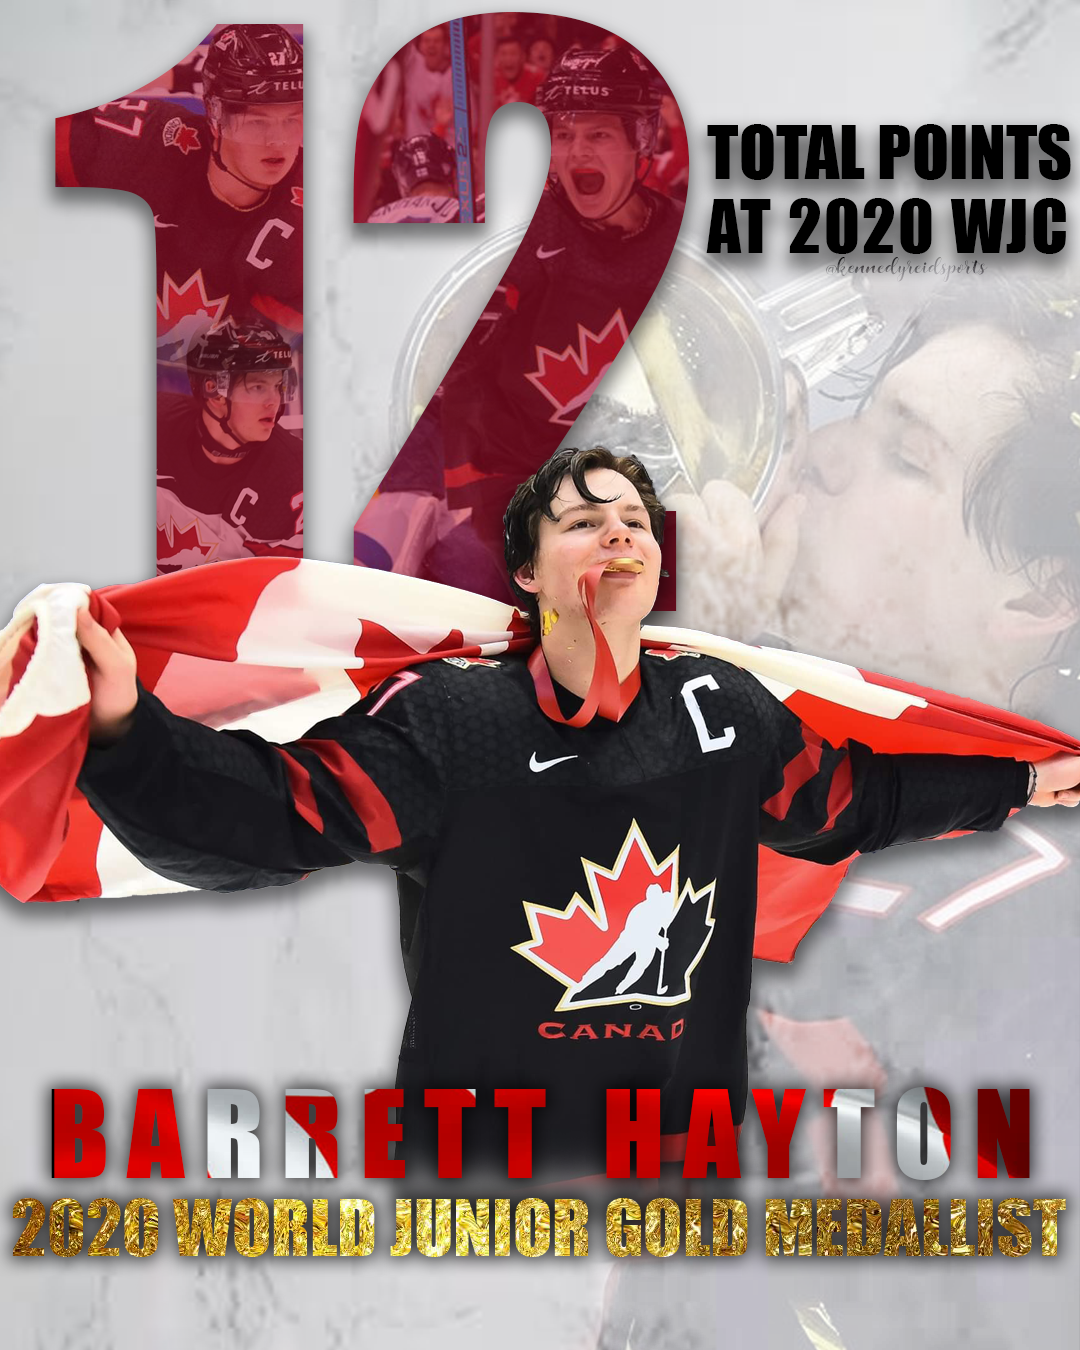 Barrett Hayton in 2020 World junior hockey, Team canada